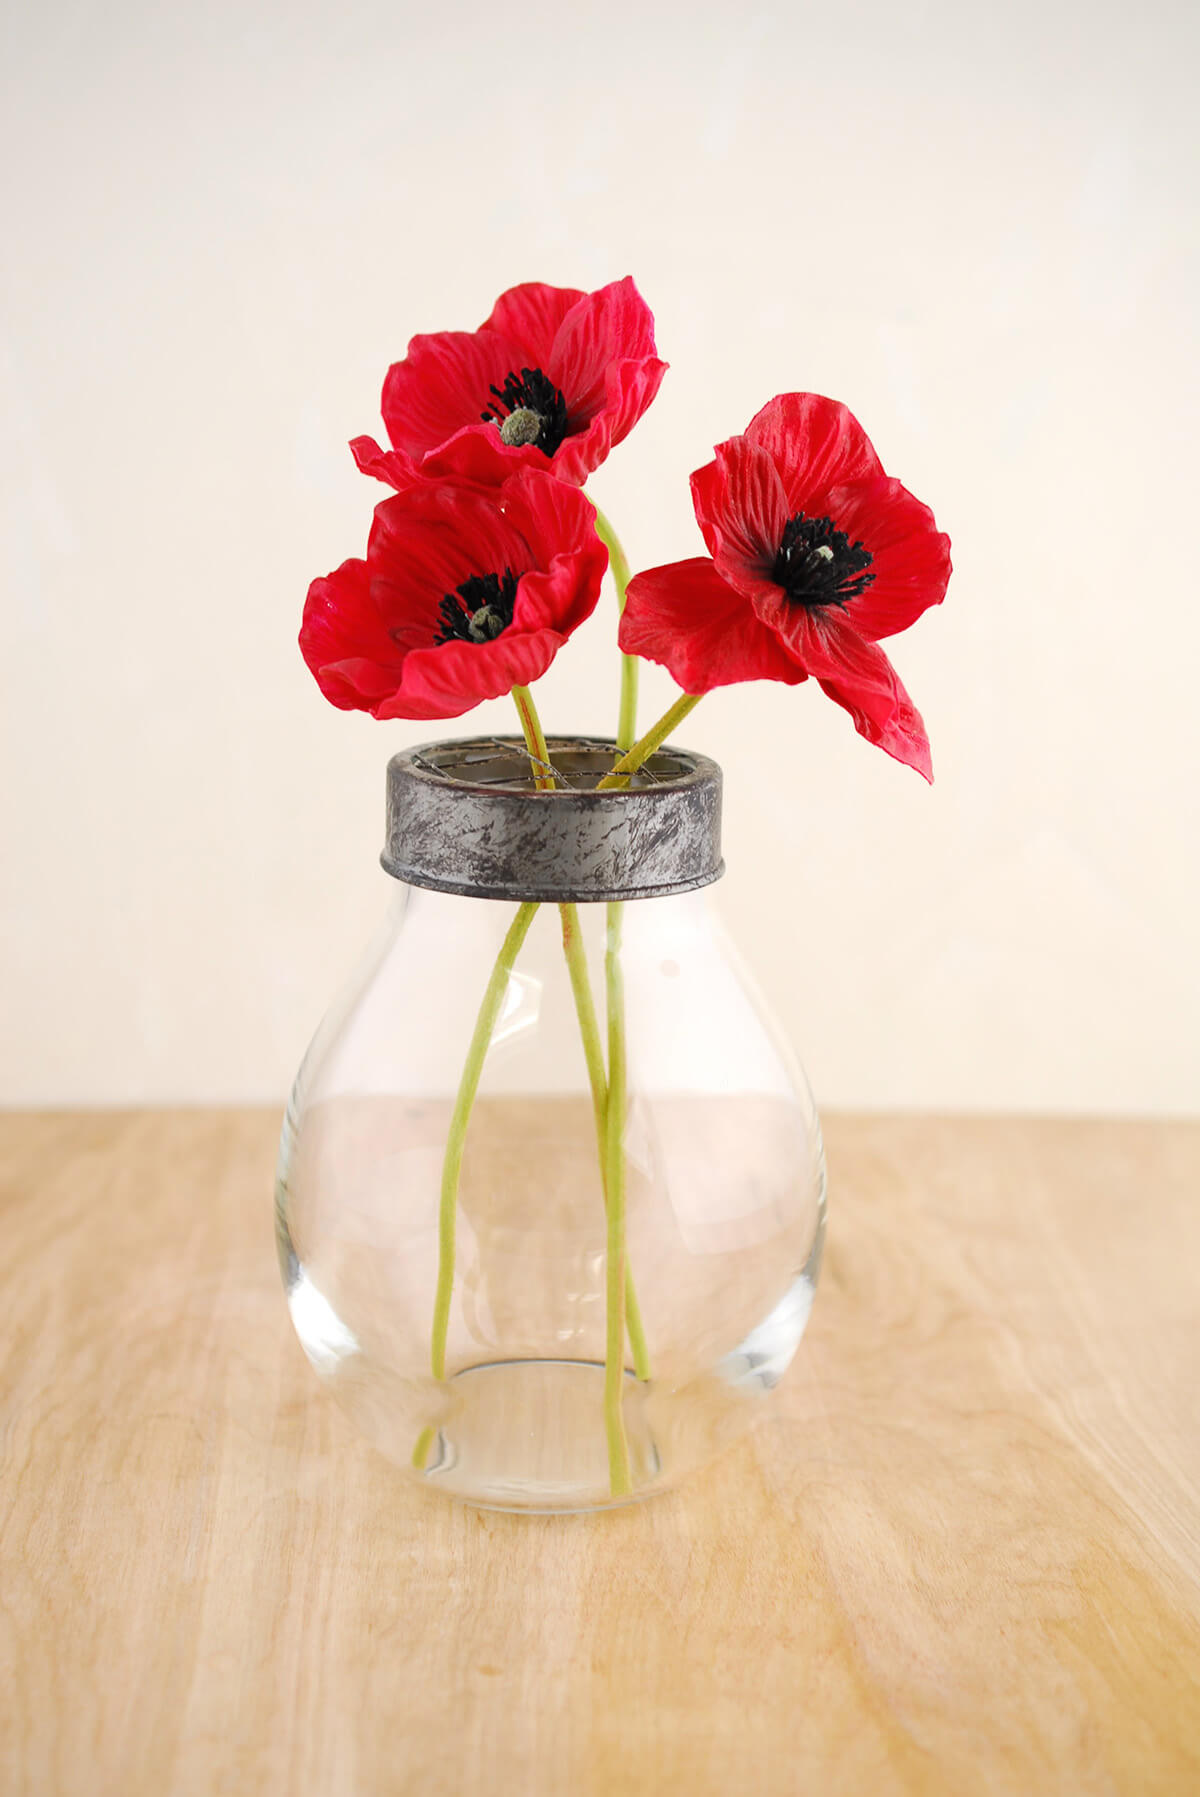 Diy Home Decors Flower Vase With Frog Lid 6 5x4 5in